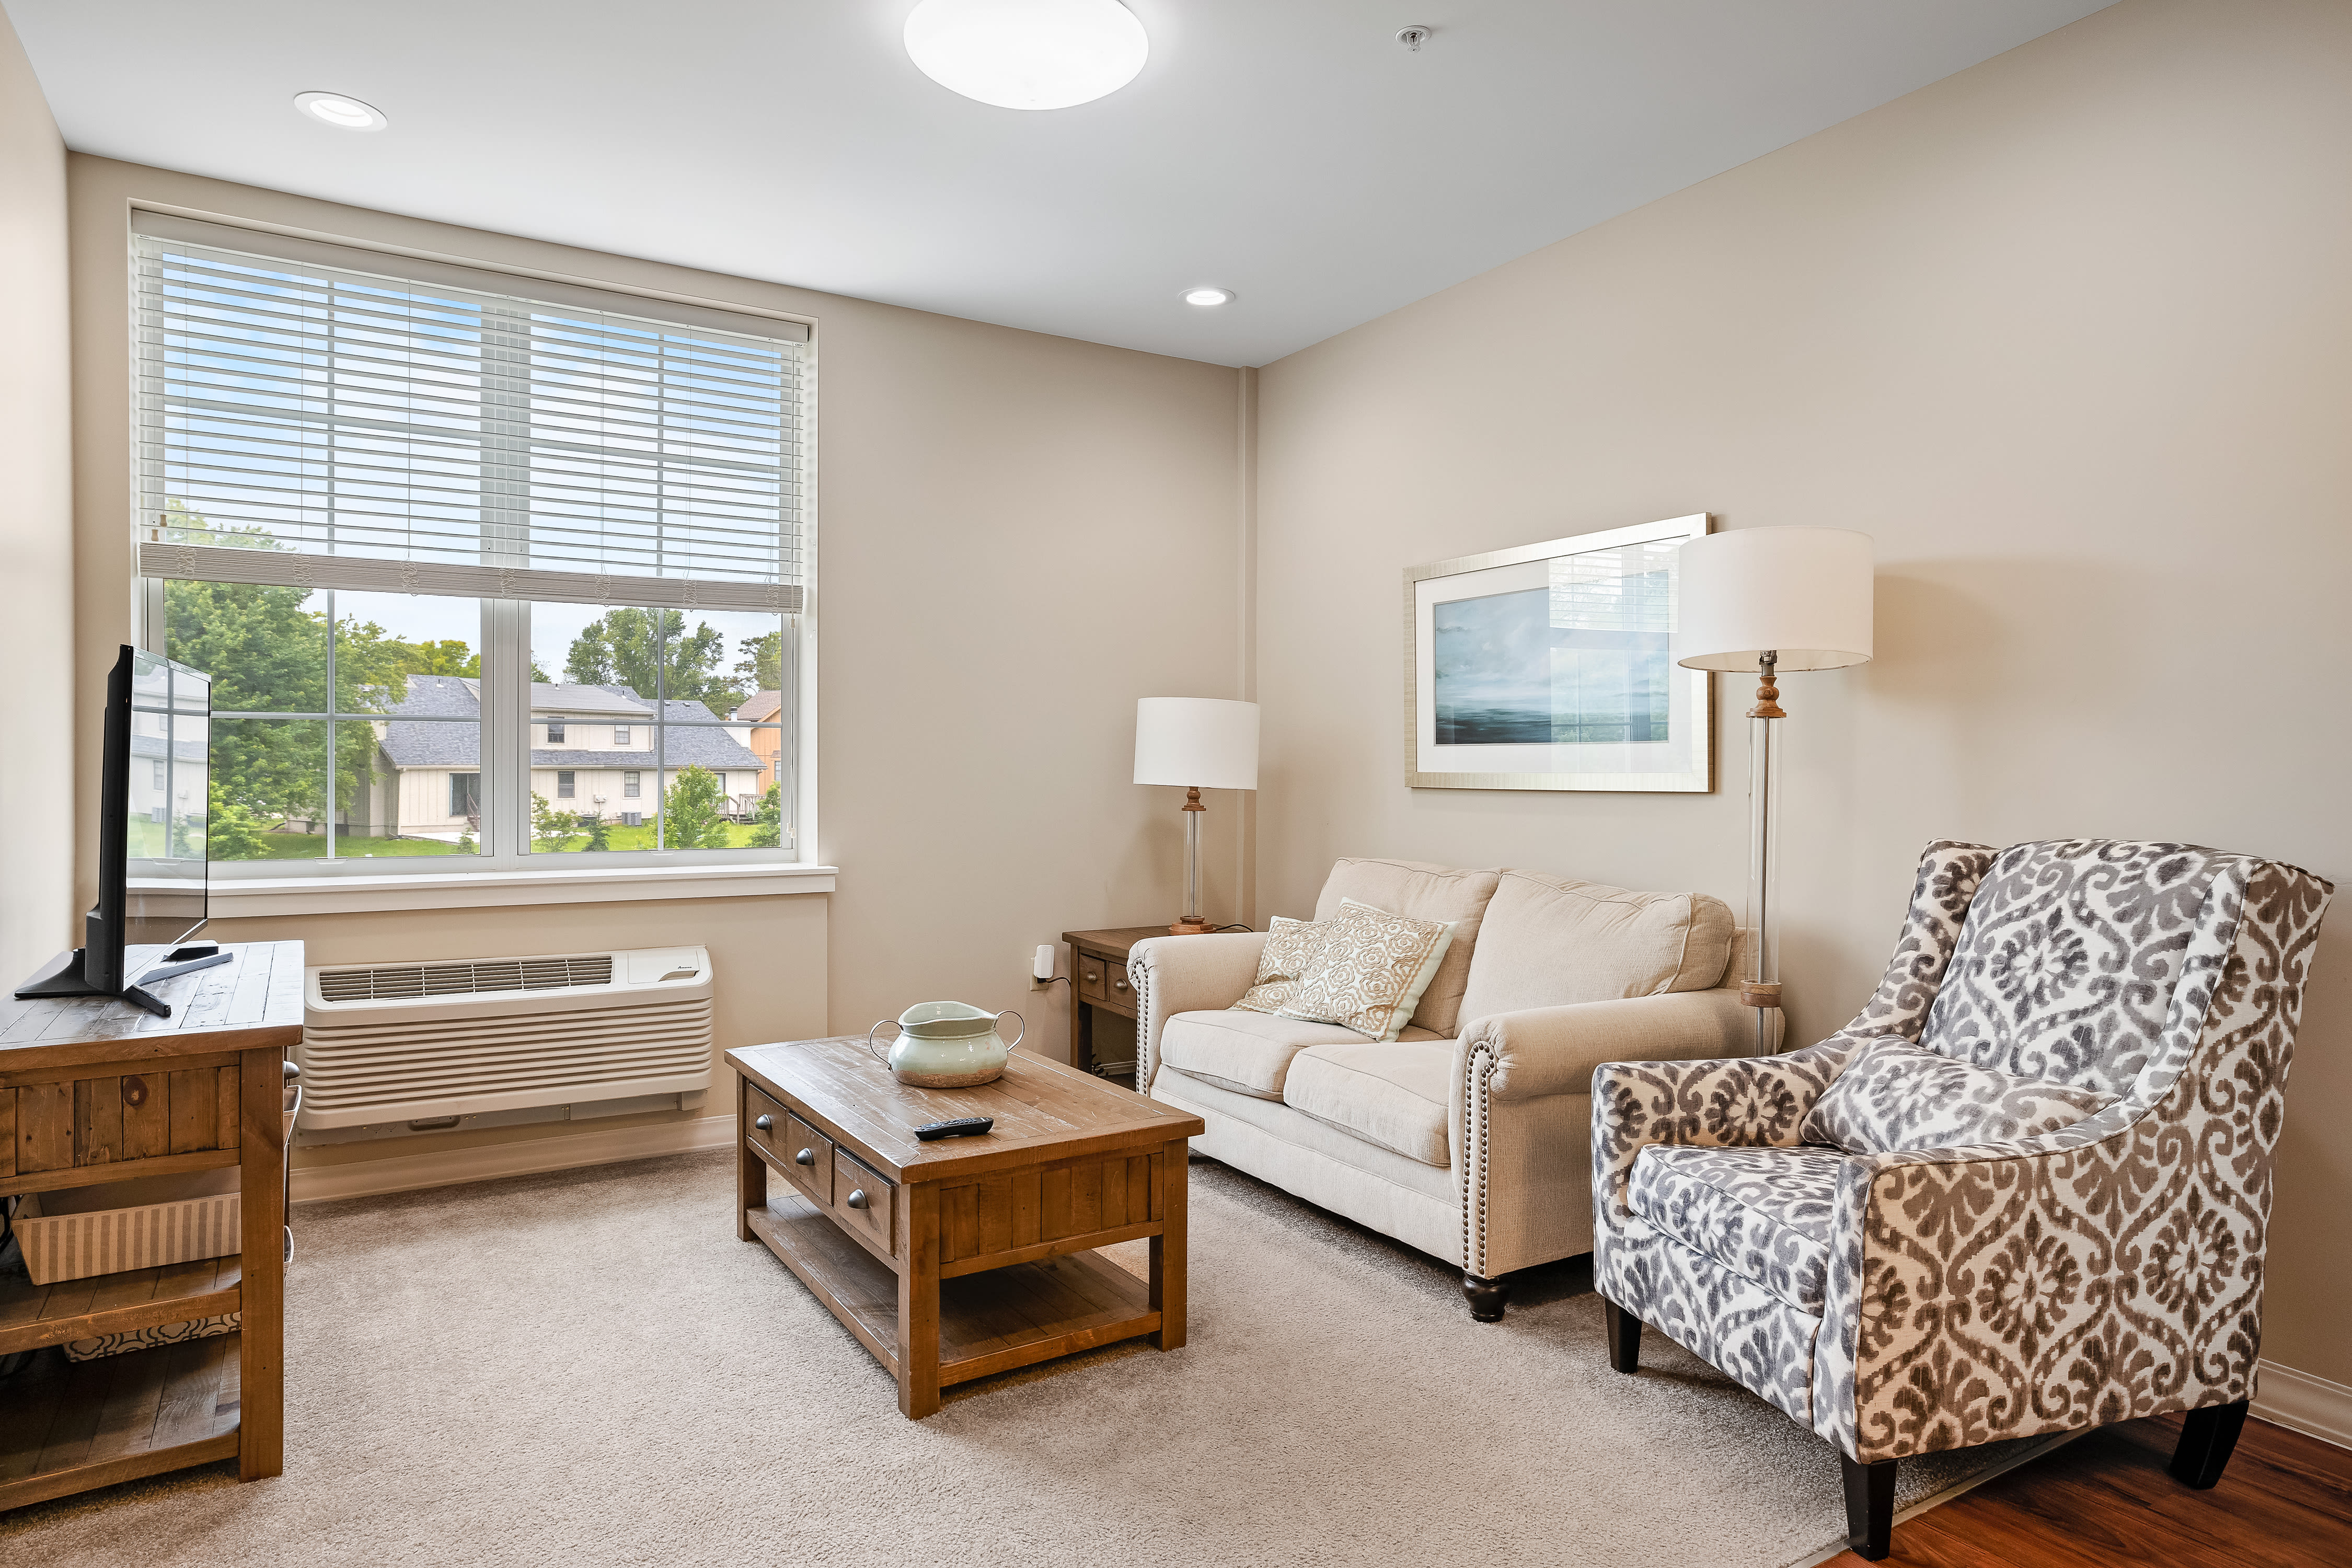 Spacious resident apartment at Anthology of Overland Park in Overland Park, Kansas.